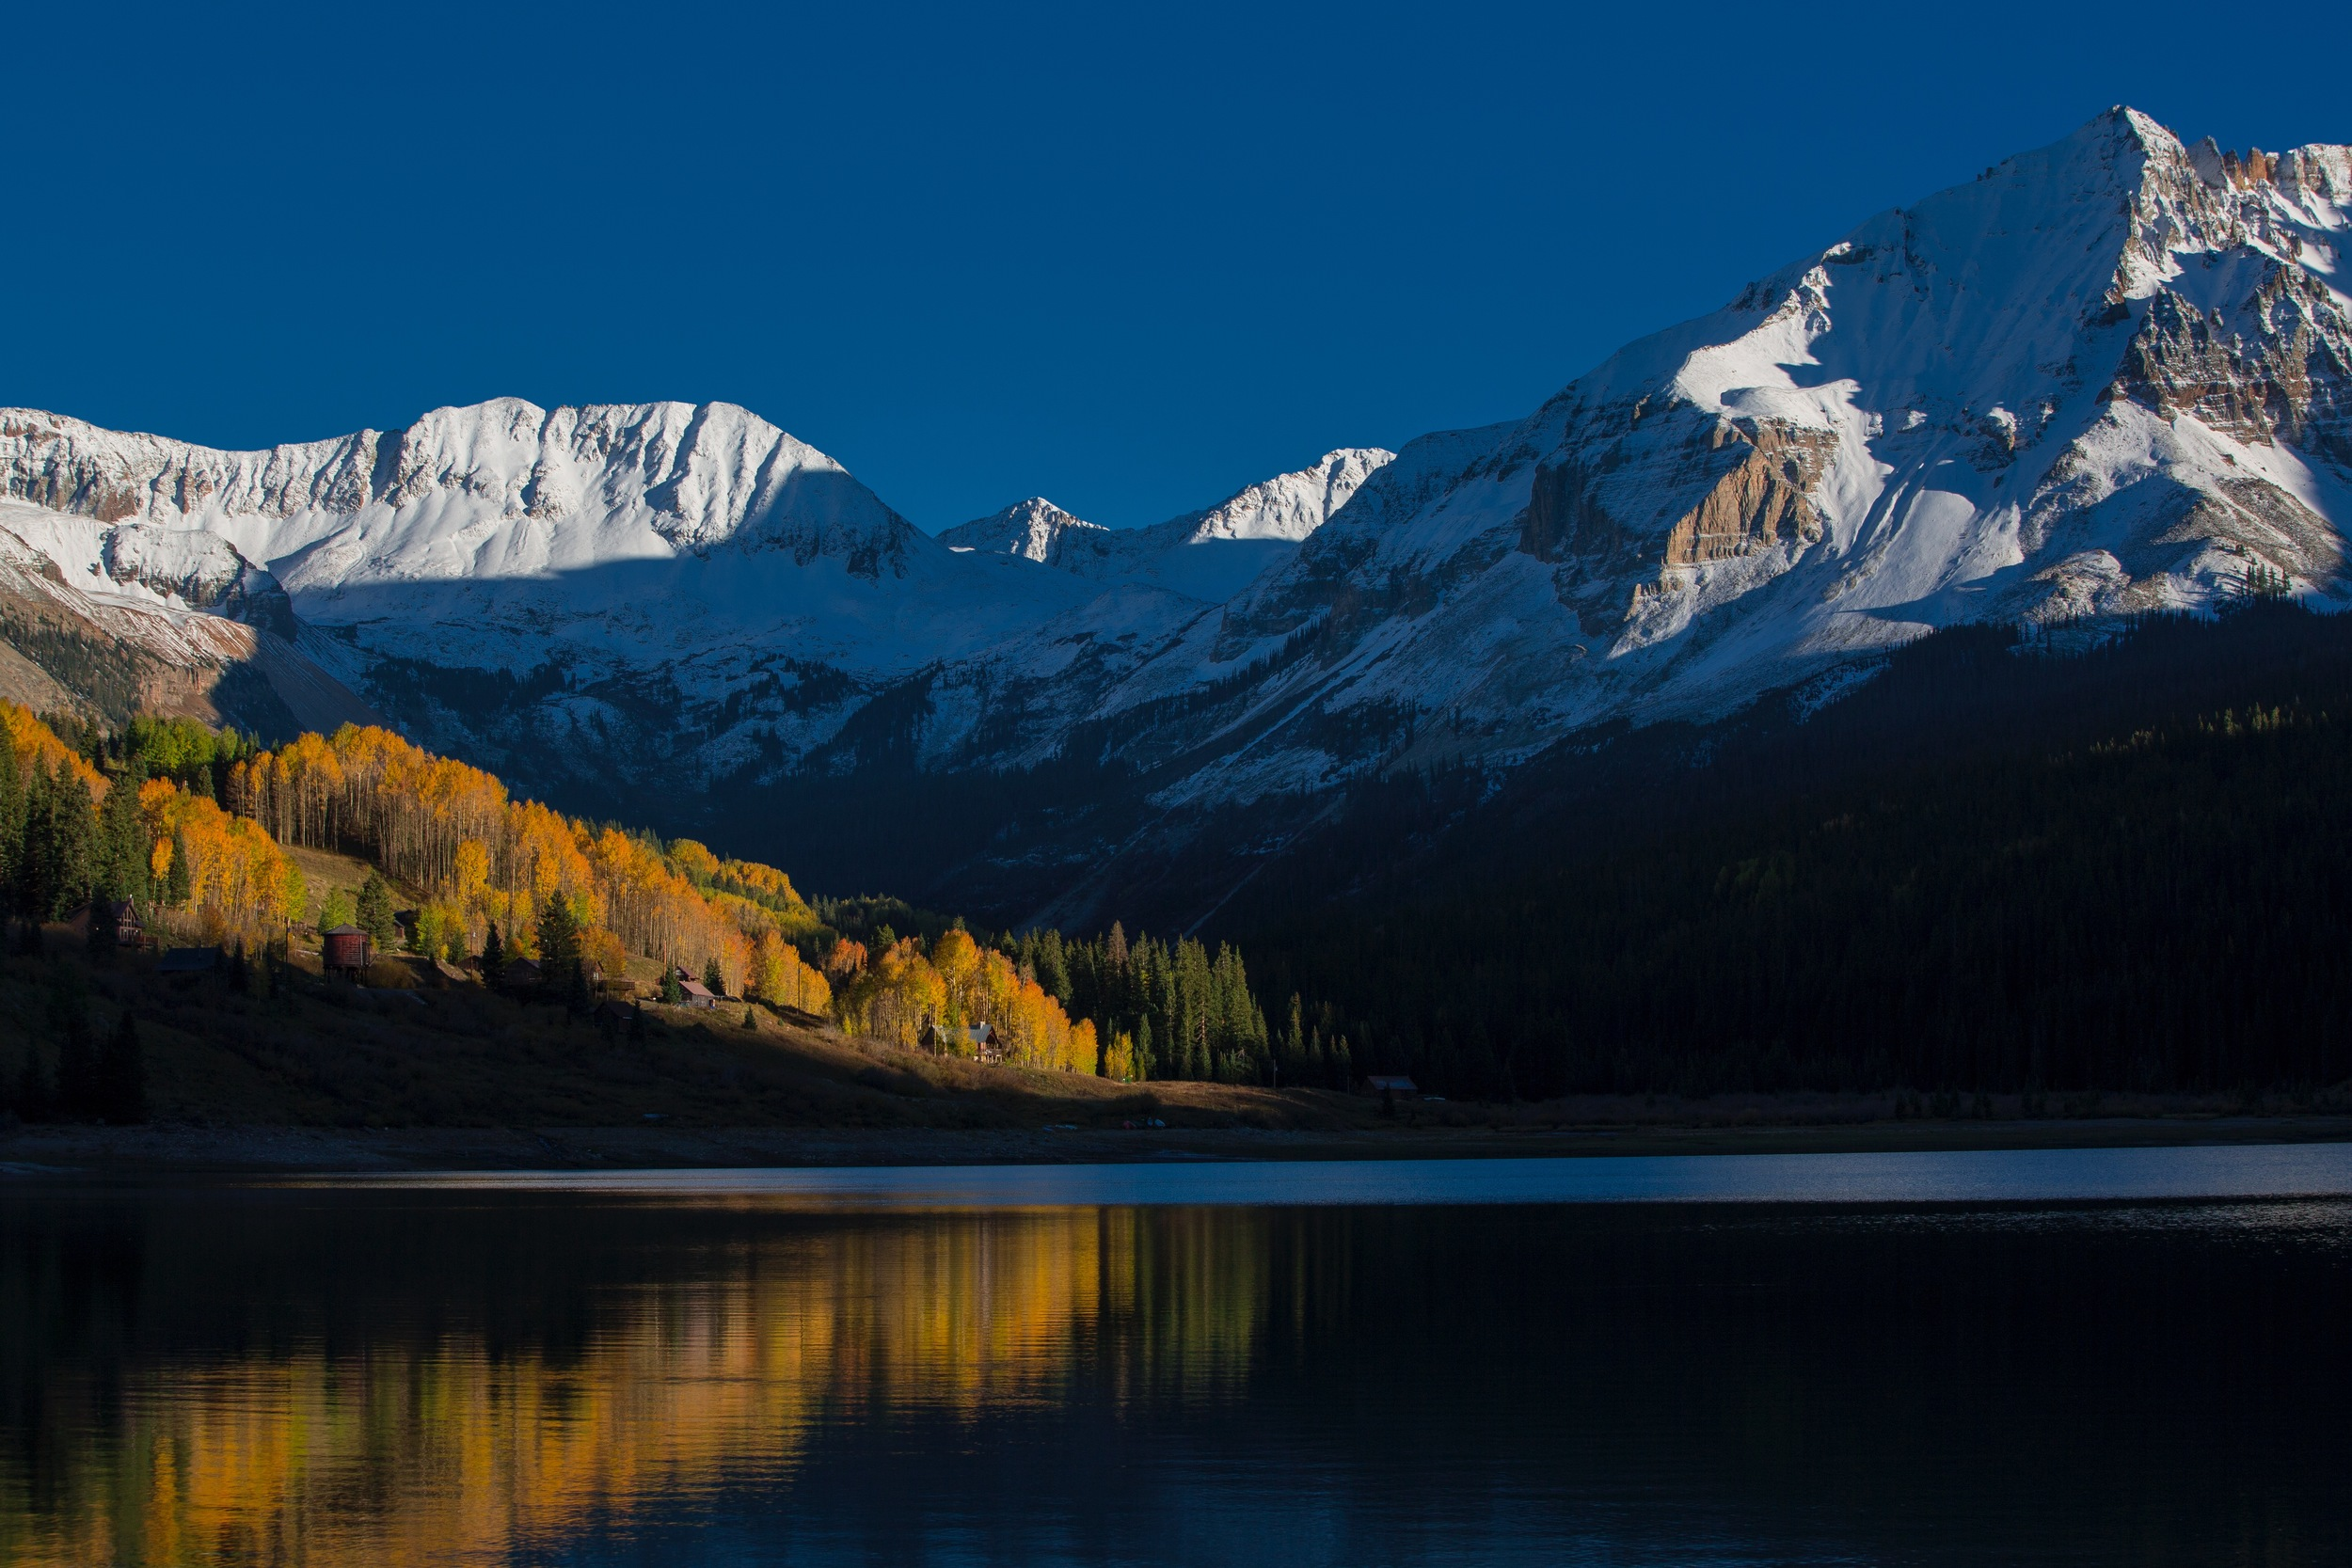 Fall colors explode in the aspen stands at Trout Lake near Telluride, Colorado in the San Juan mountains.